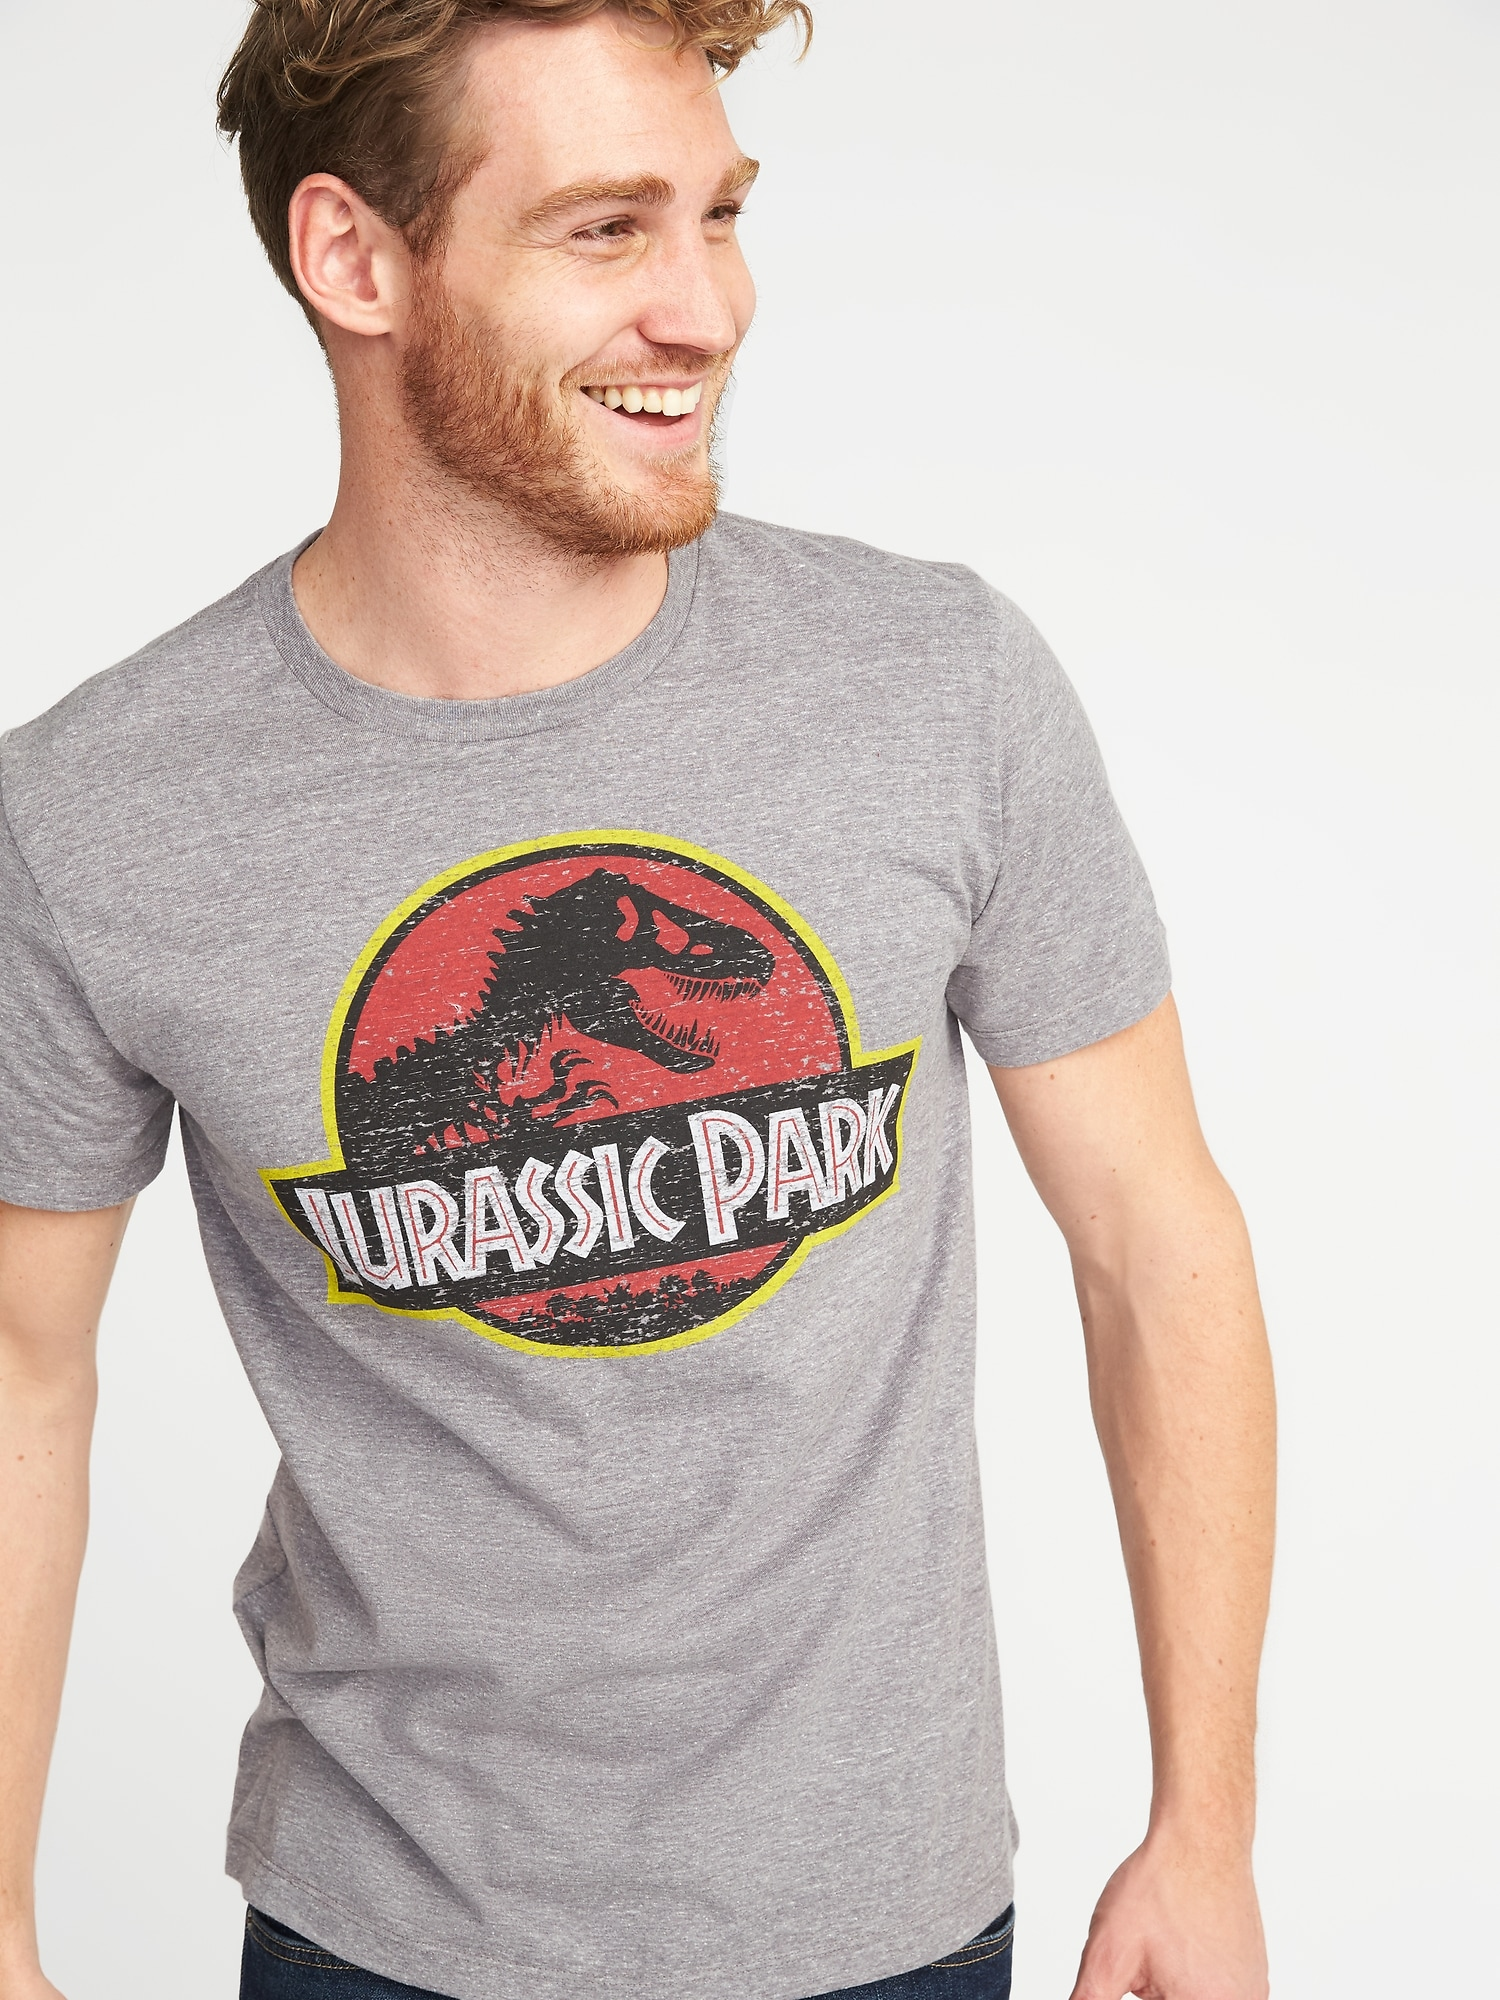 Jurassic Park Graphic Tee For Men Old Navy Jurassic Park T Shirt Mens Graphic Tee Graphic Tees